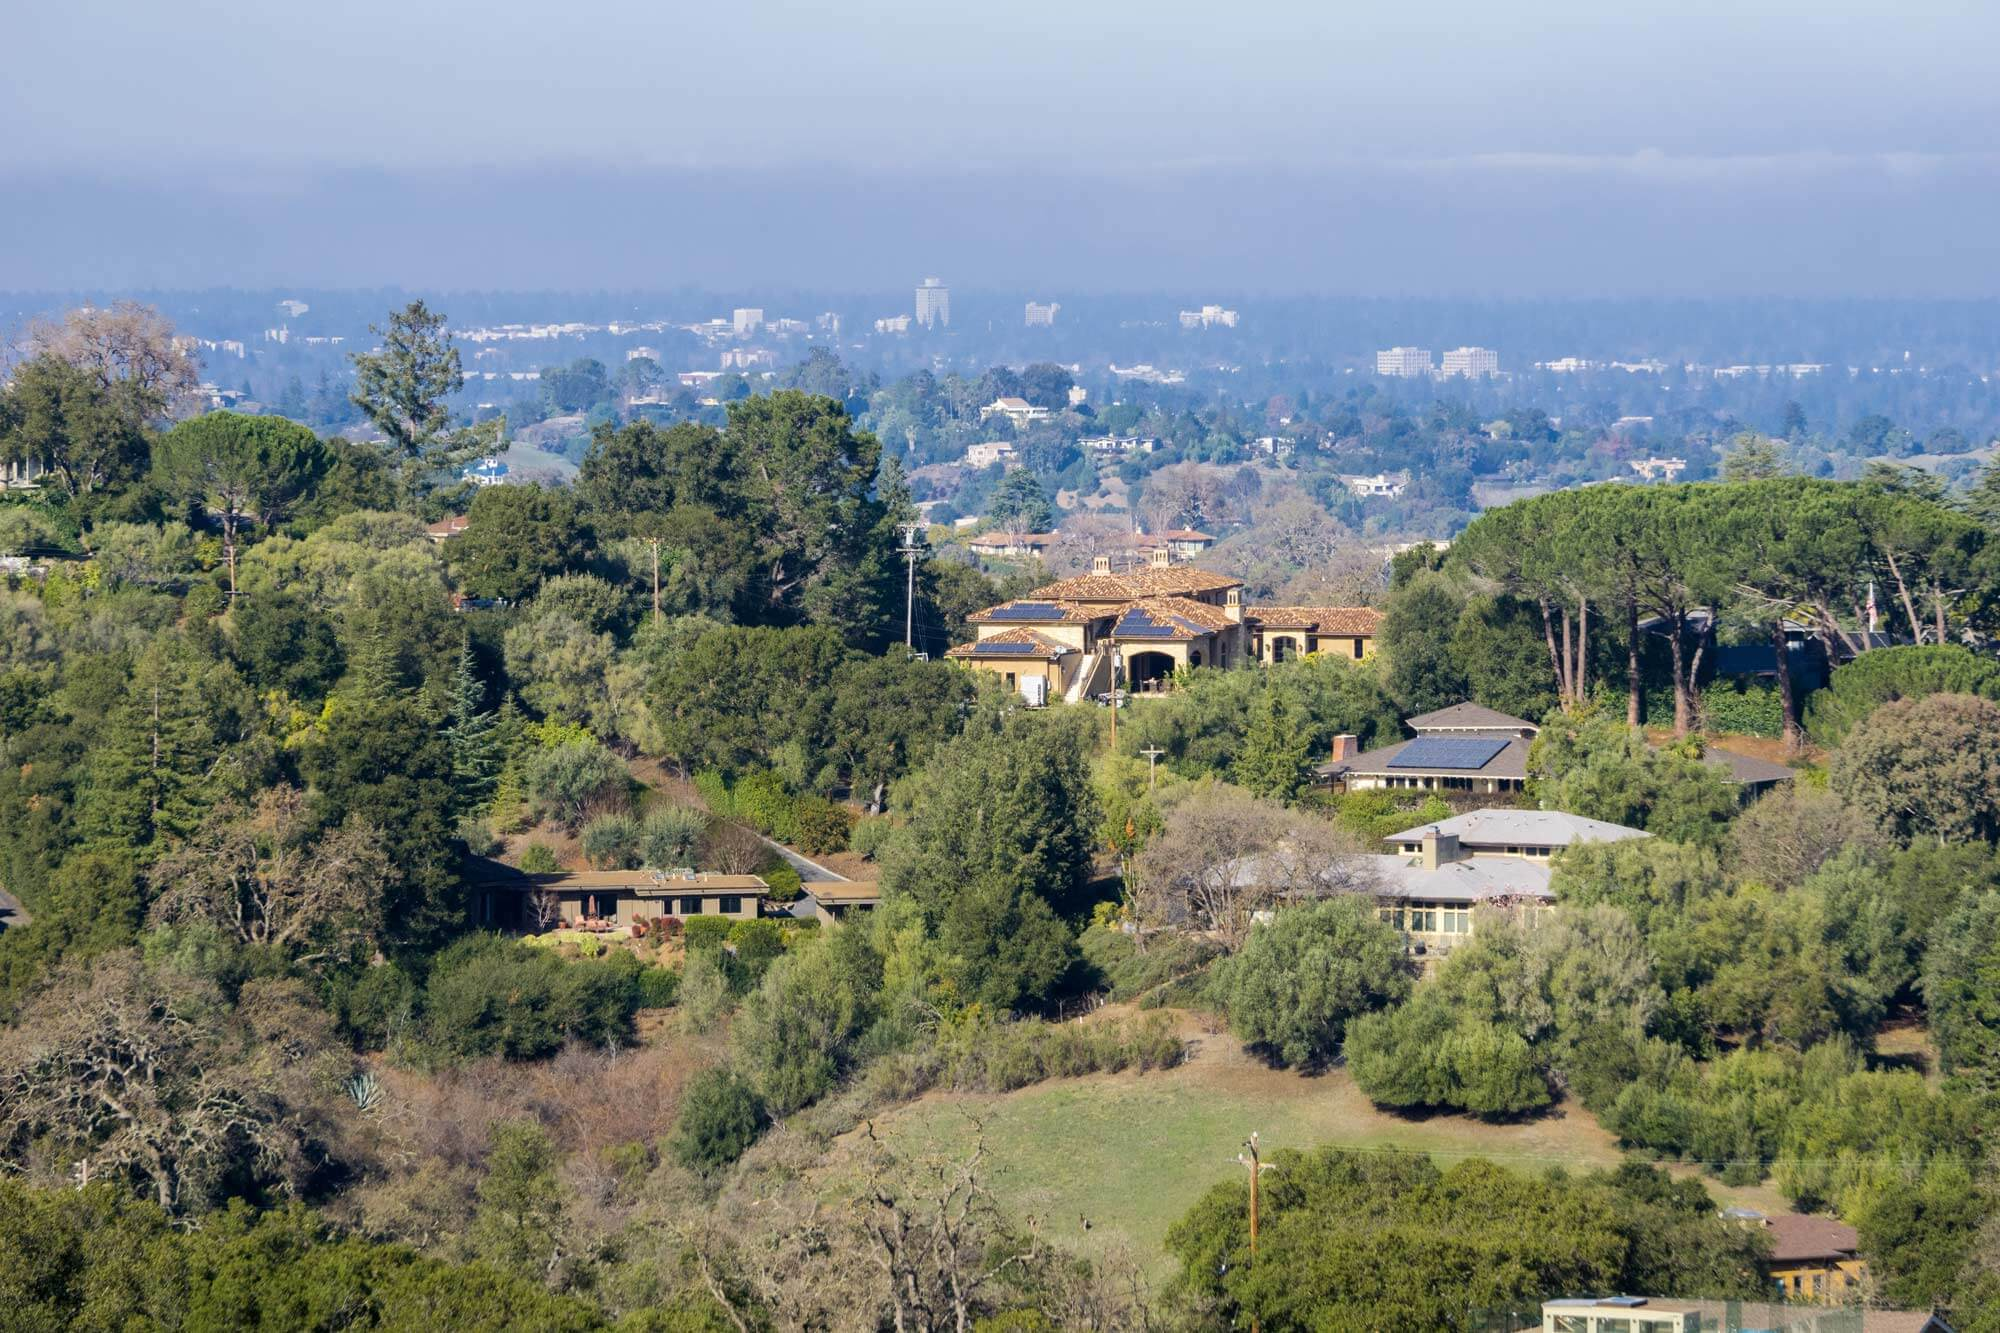 Aerial view of Los Altos